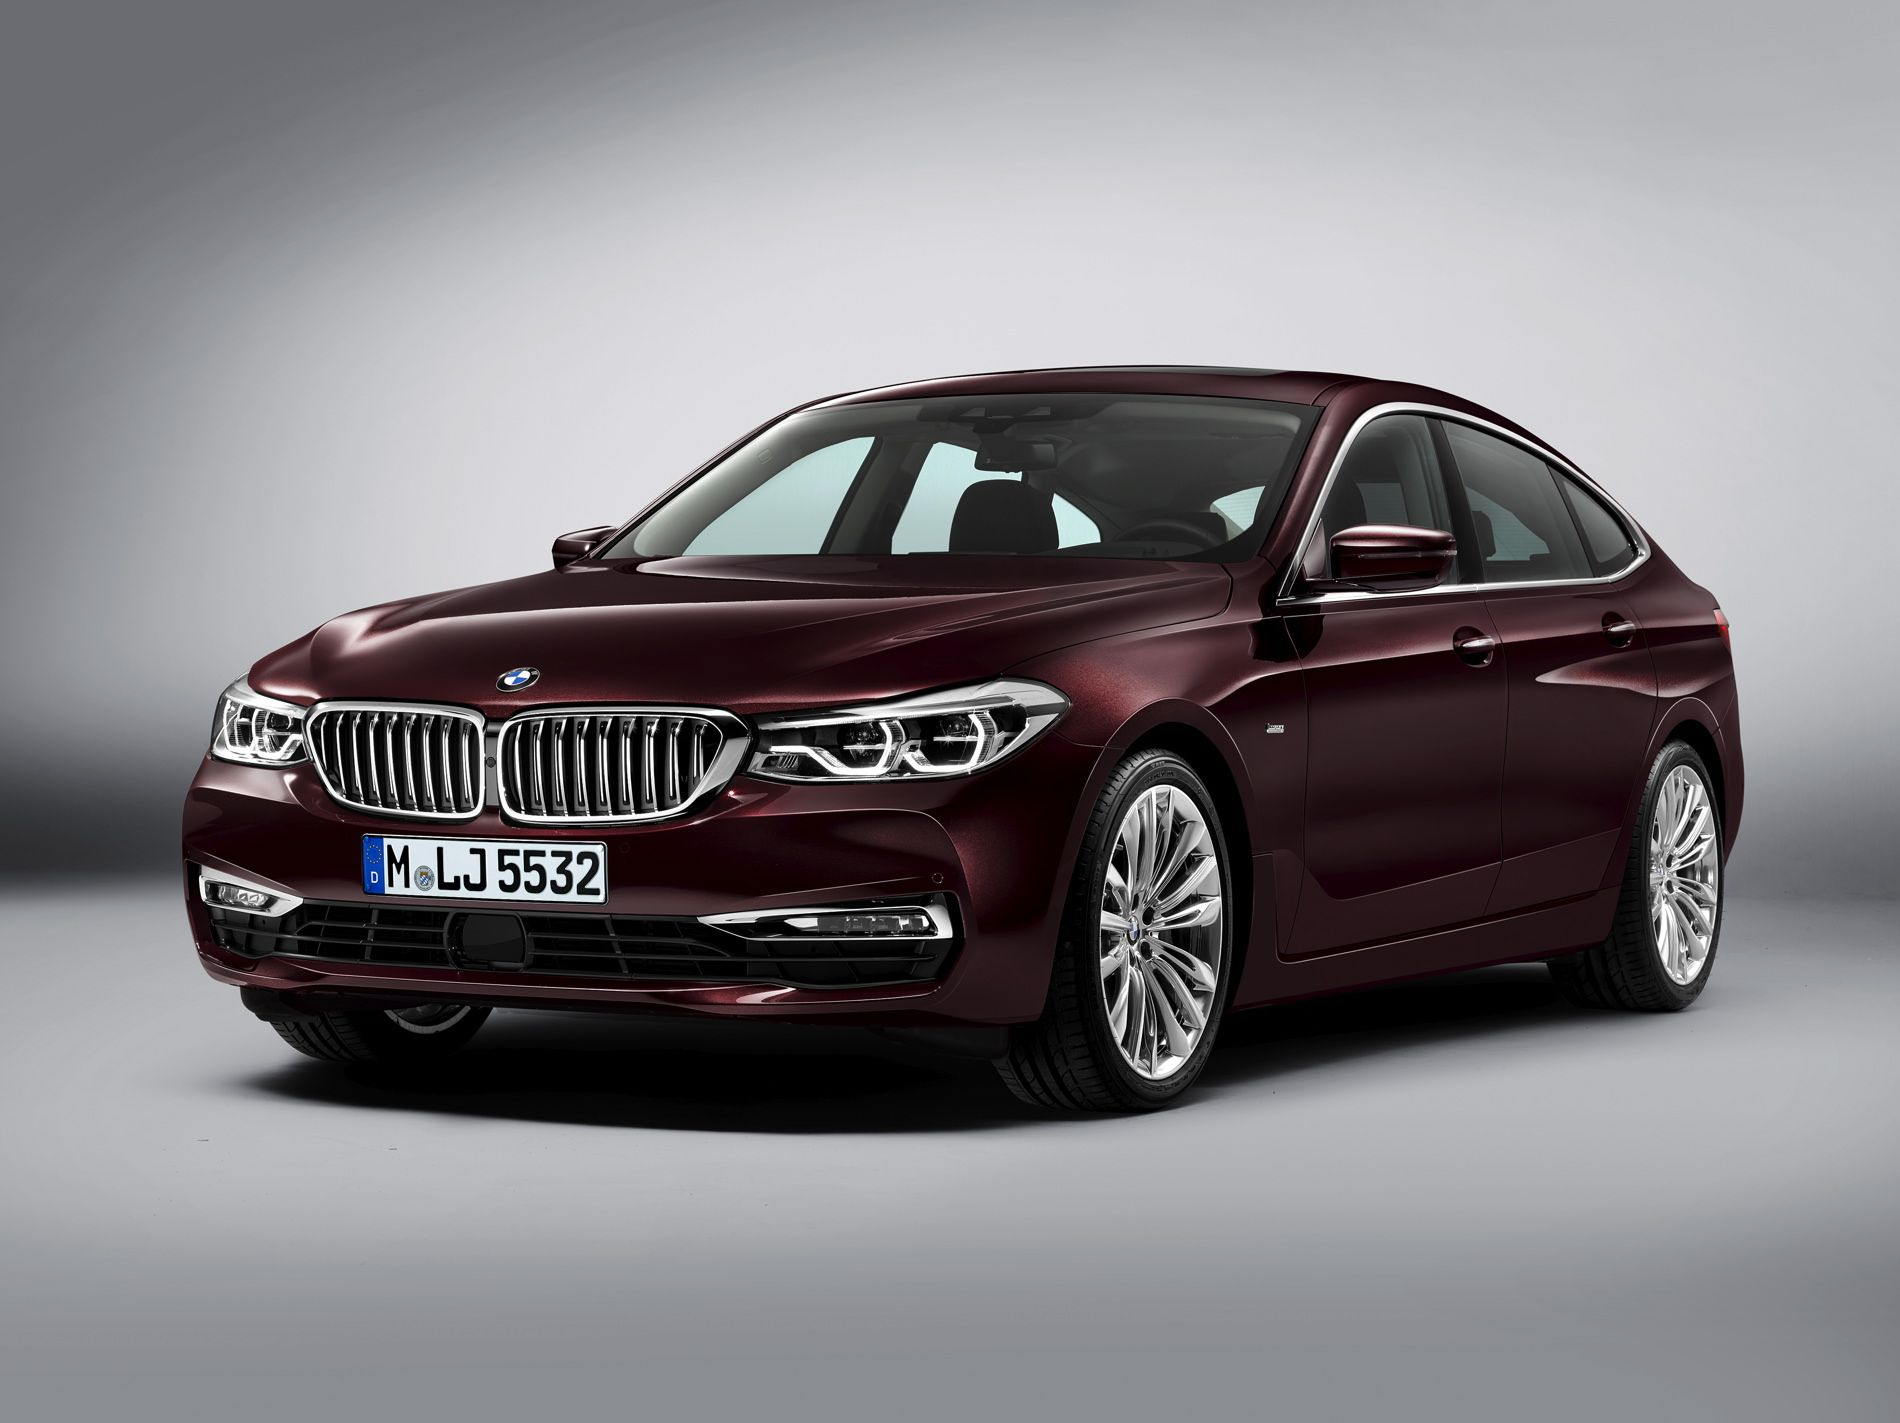 2018 Bmw 6 Series Gt Complete Line Up Specifications Bmw 6